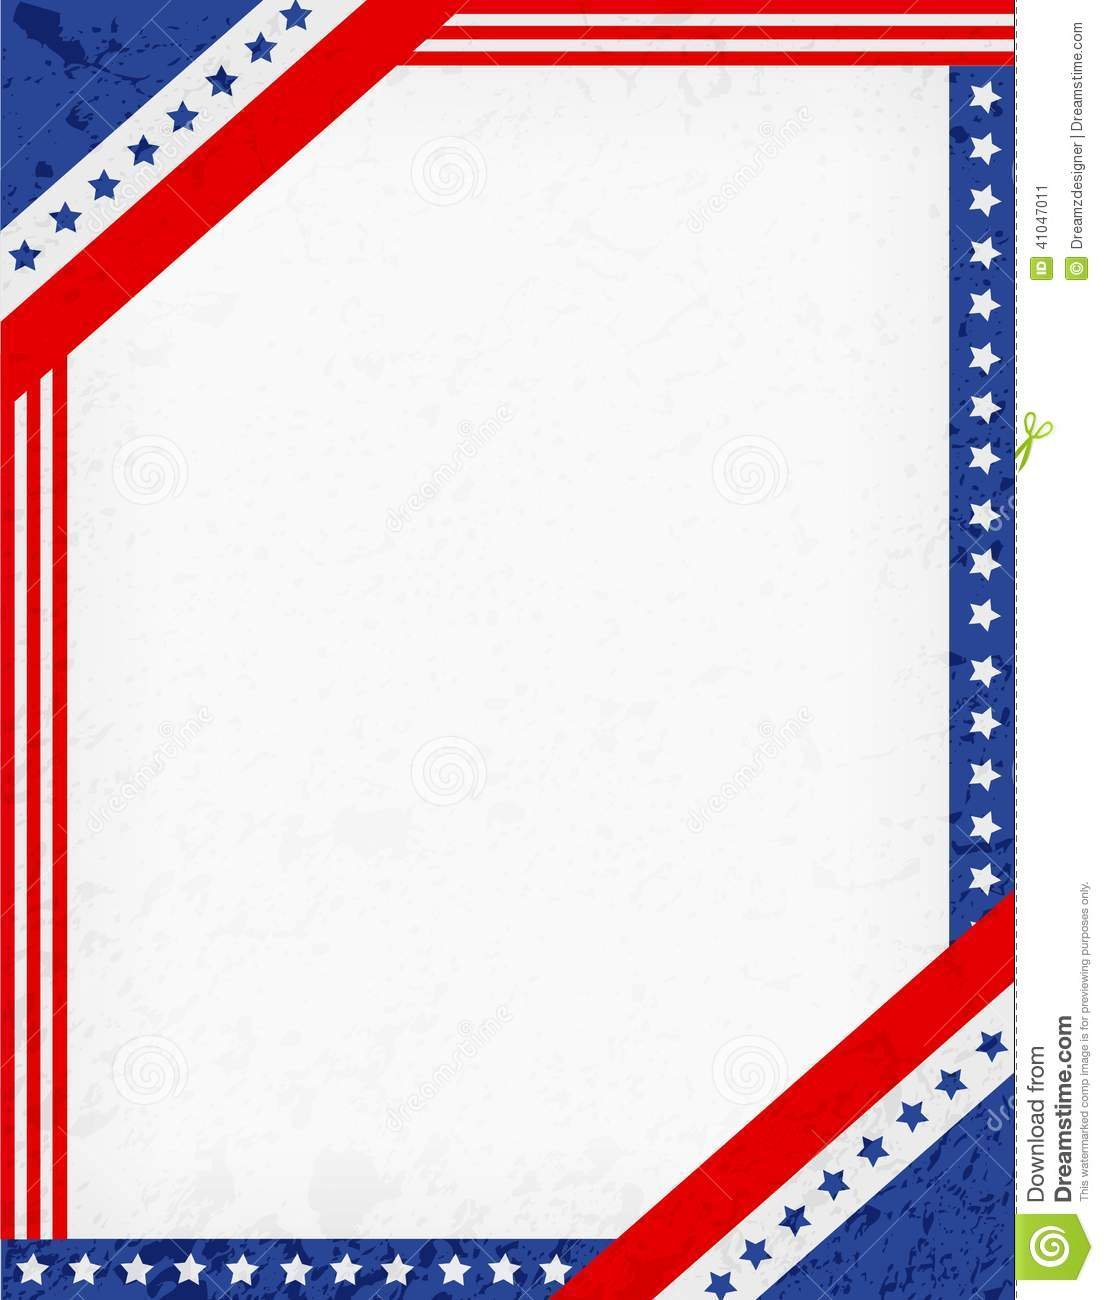 American Flag Borders Red and blue american flag